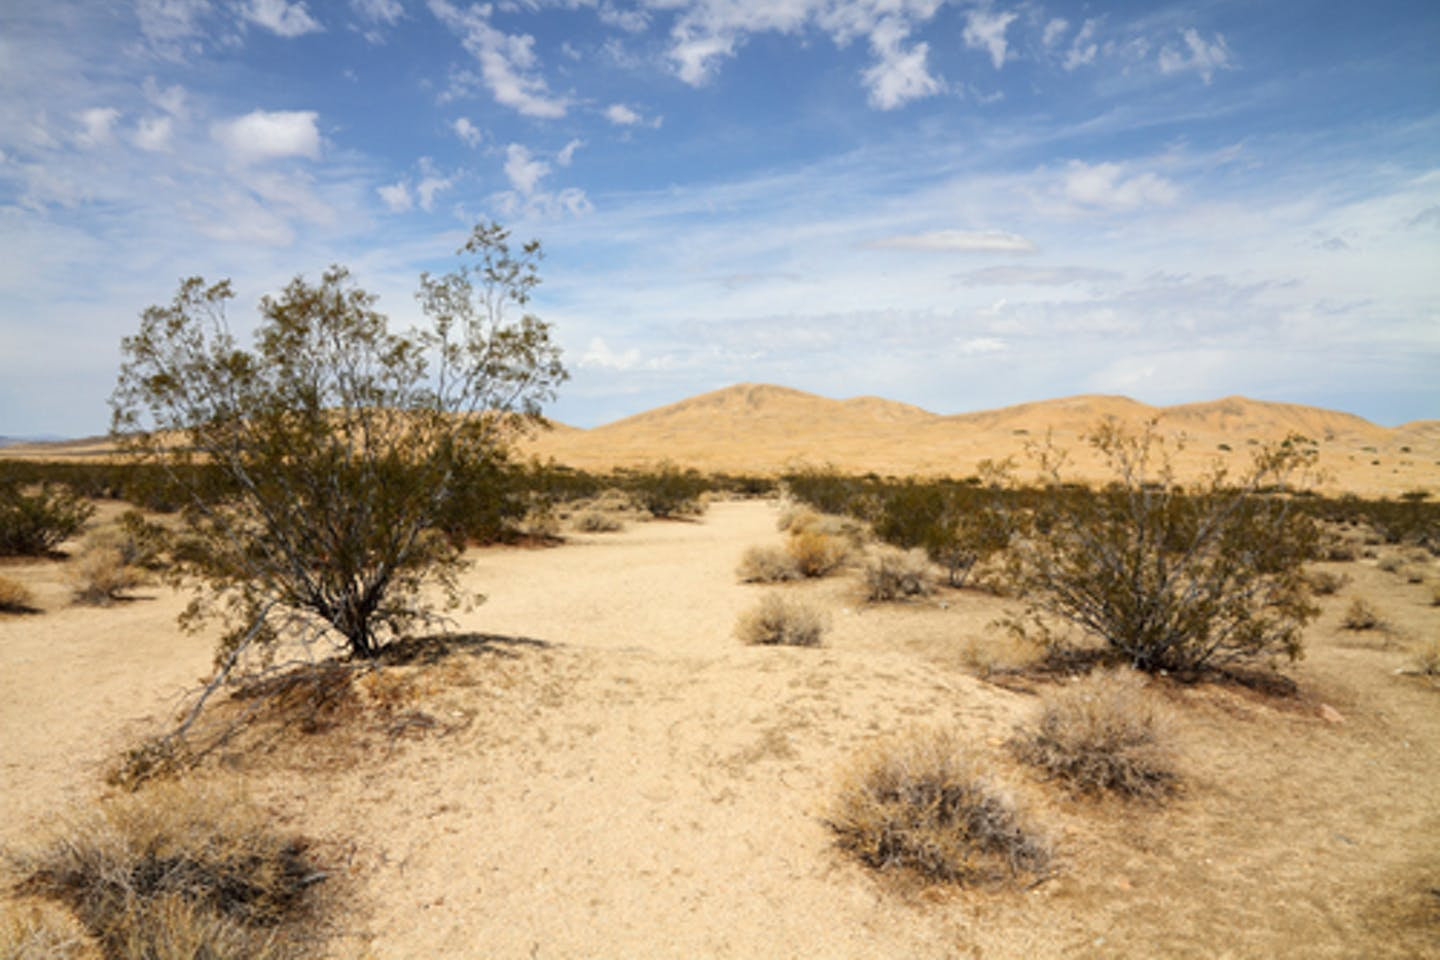 California desertification